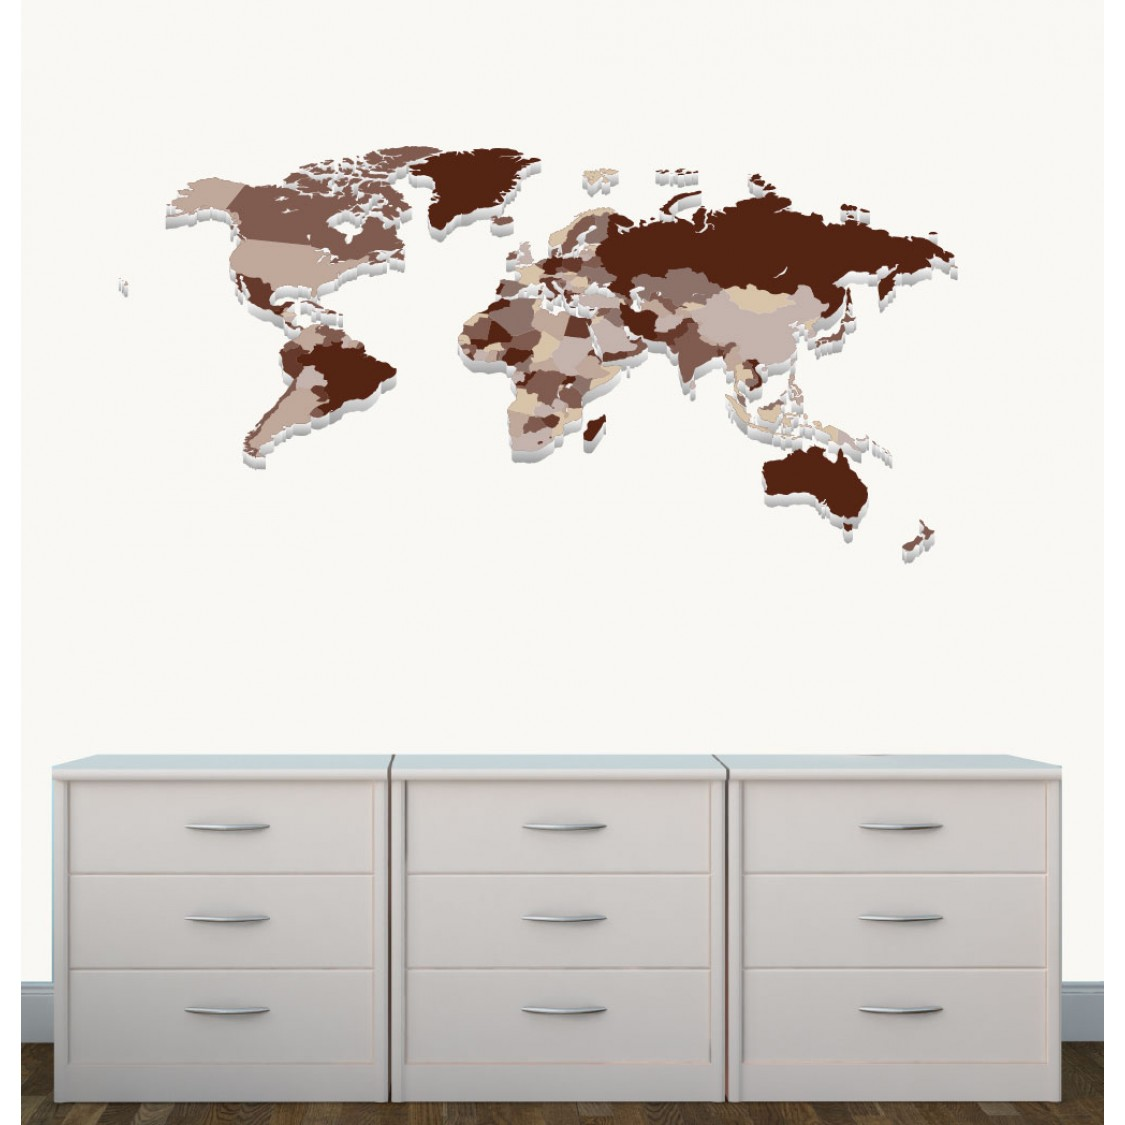 Children's Bedroom Wall Stickers With World Map Wall Stickers For Kids